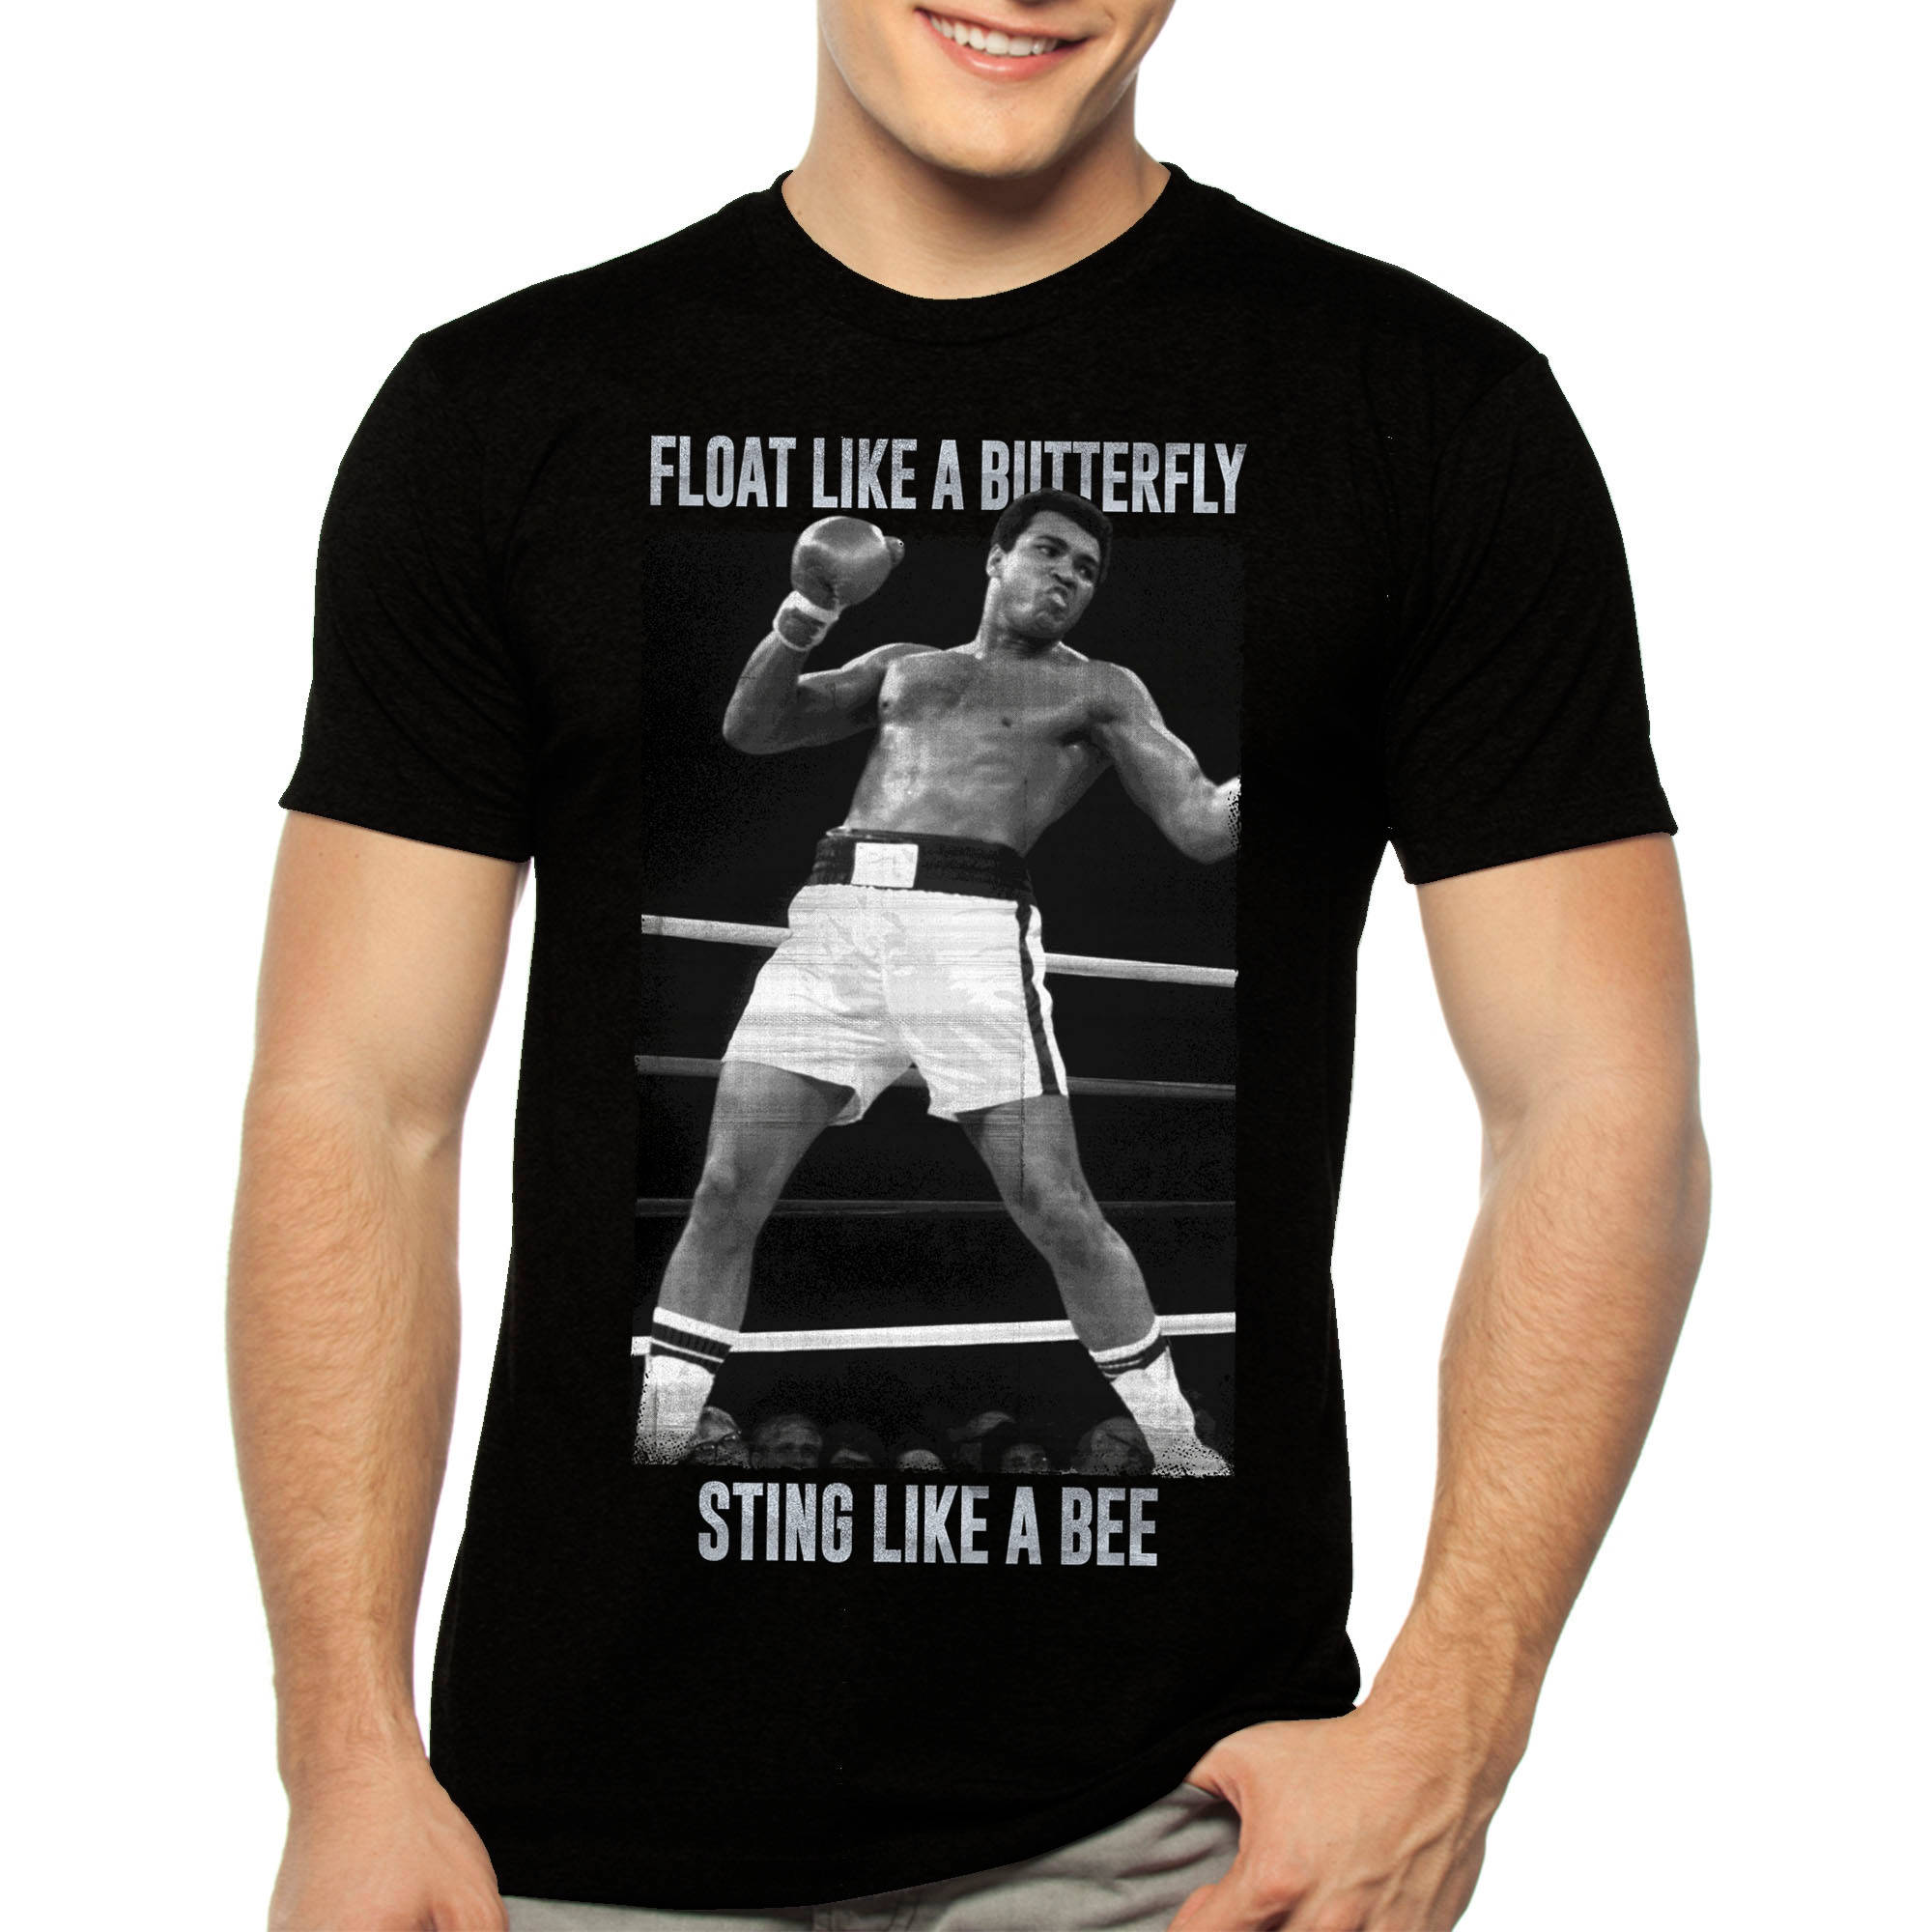 Muhammad Ali Big Men's Float Like a Butterfly Graphic Tee, 2XL